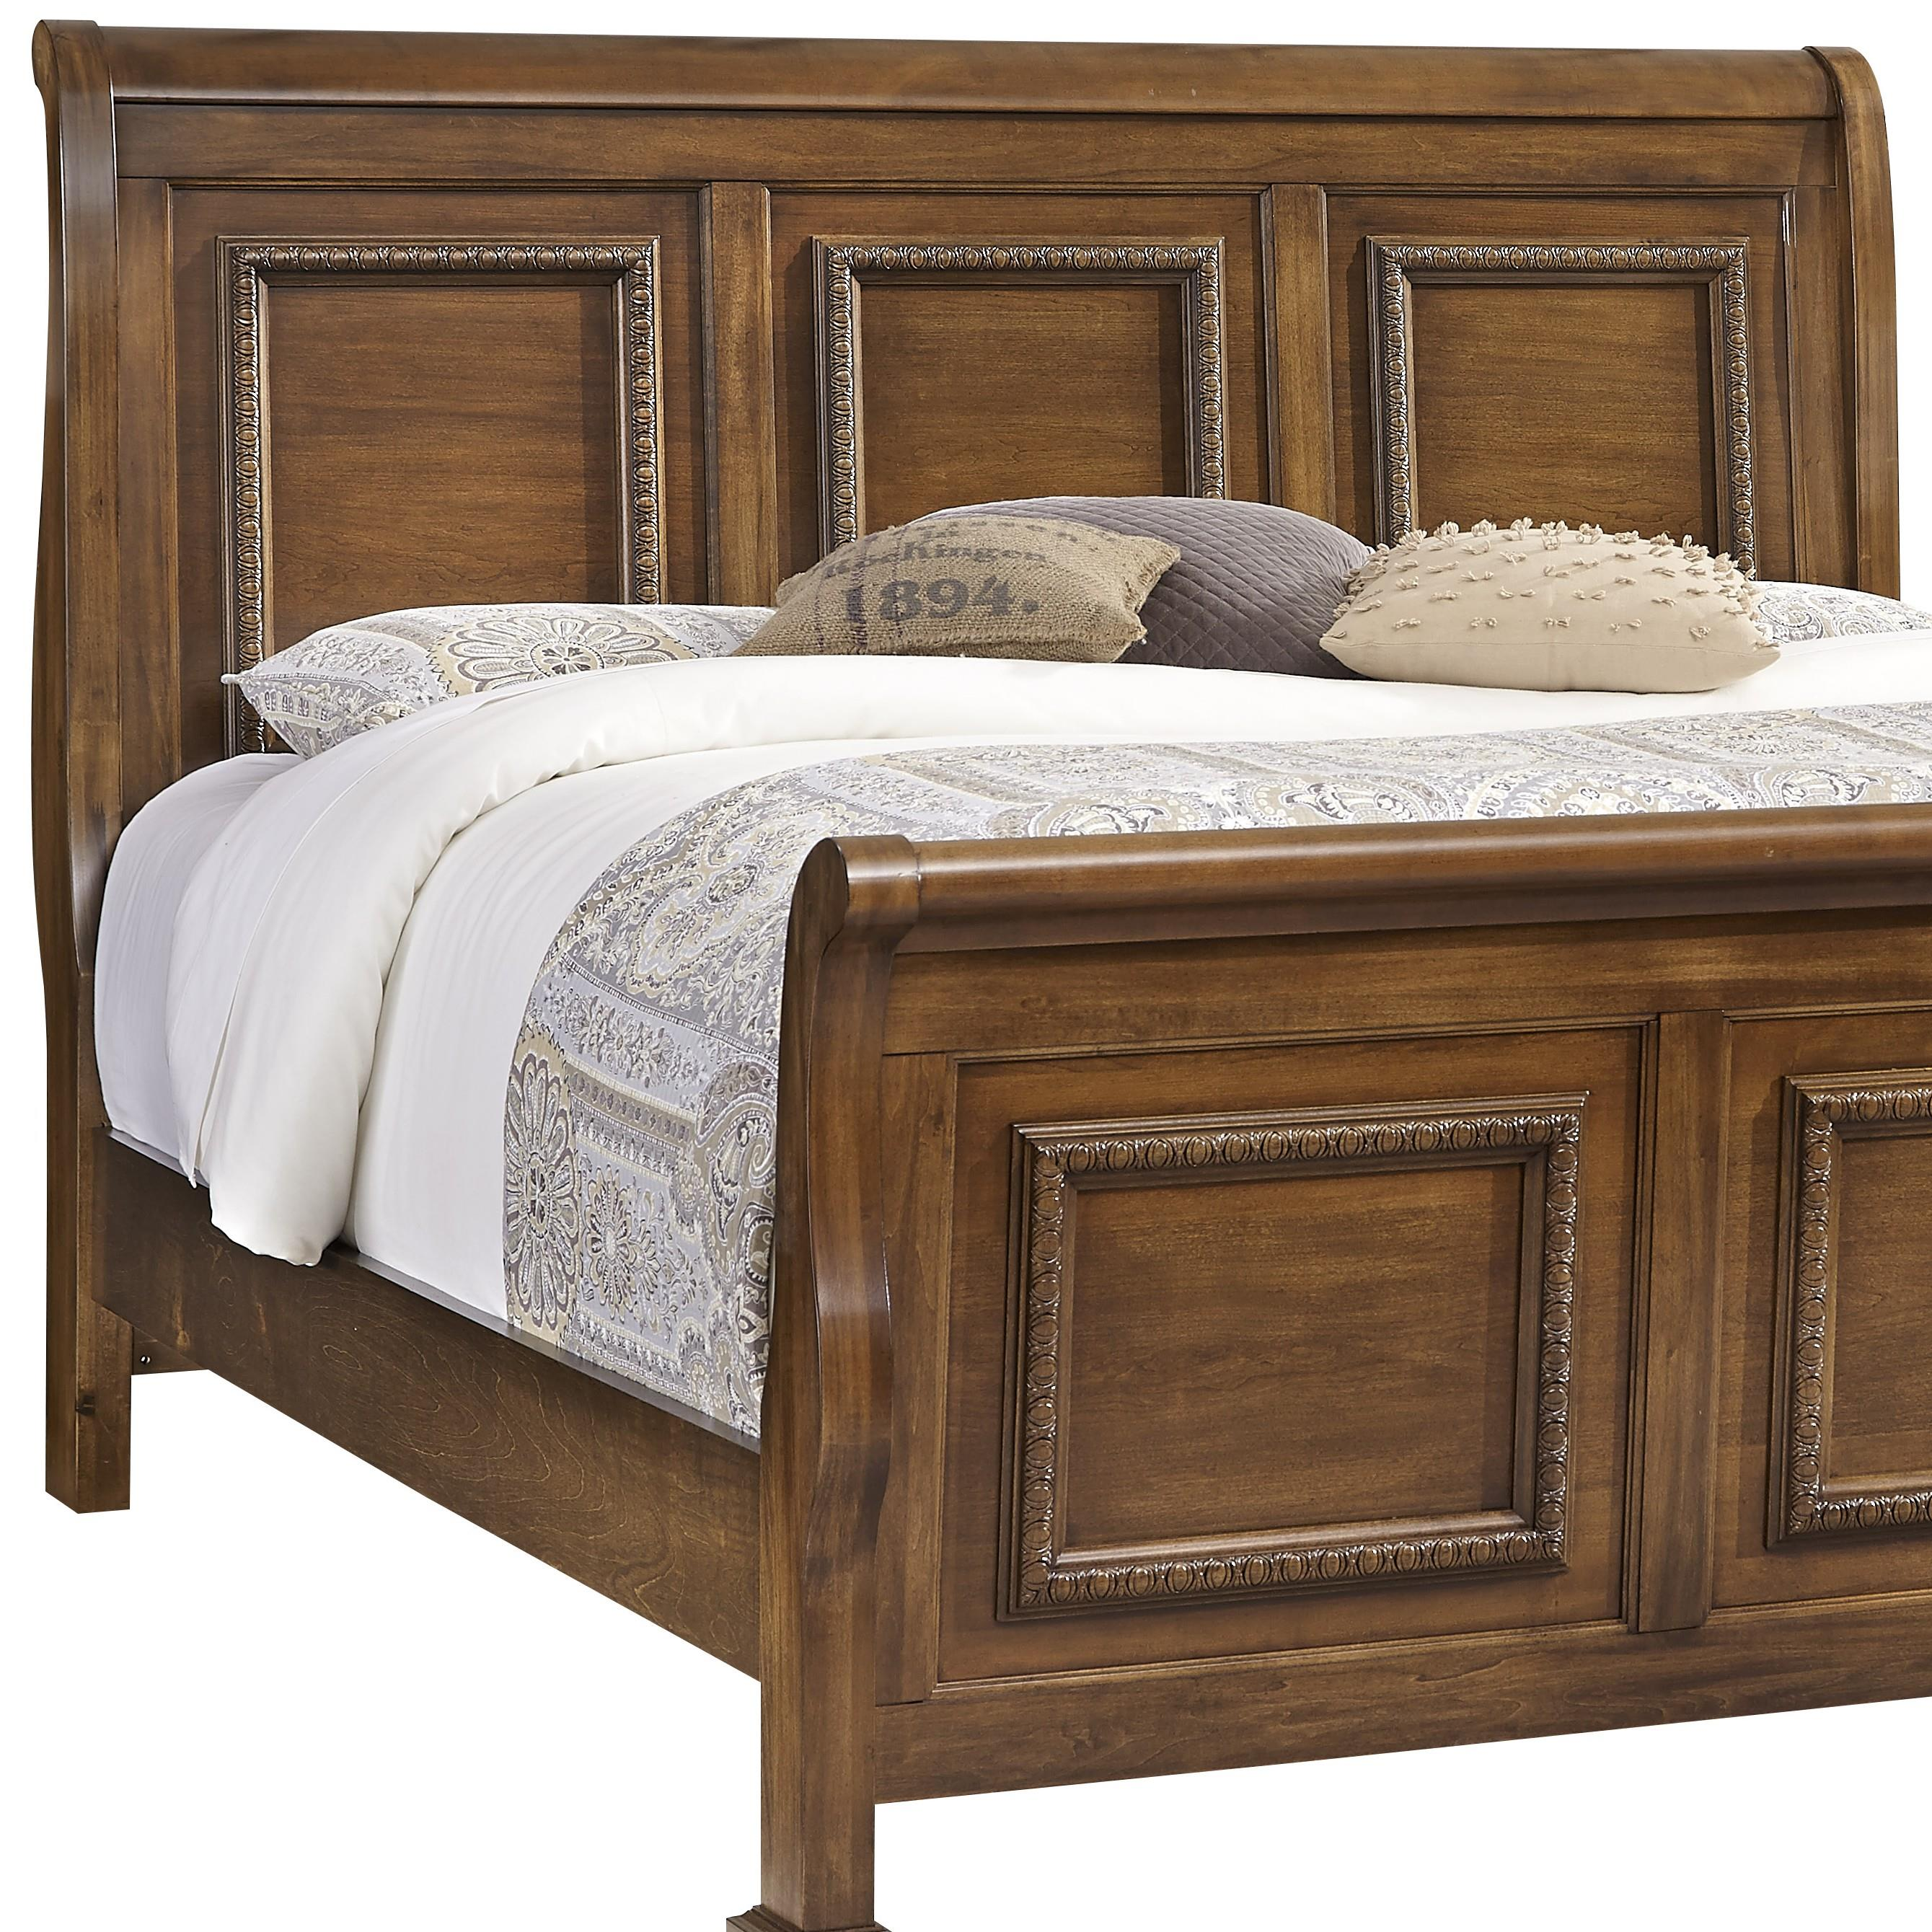 Vaughan Bassett Affinity Queen Sleigh Headboard - Item Number: 562-553